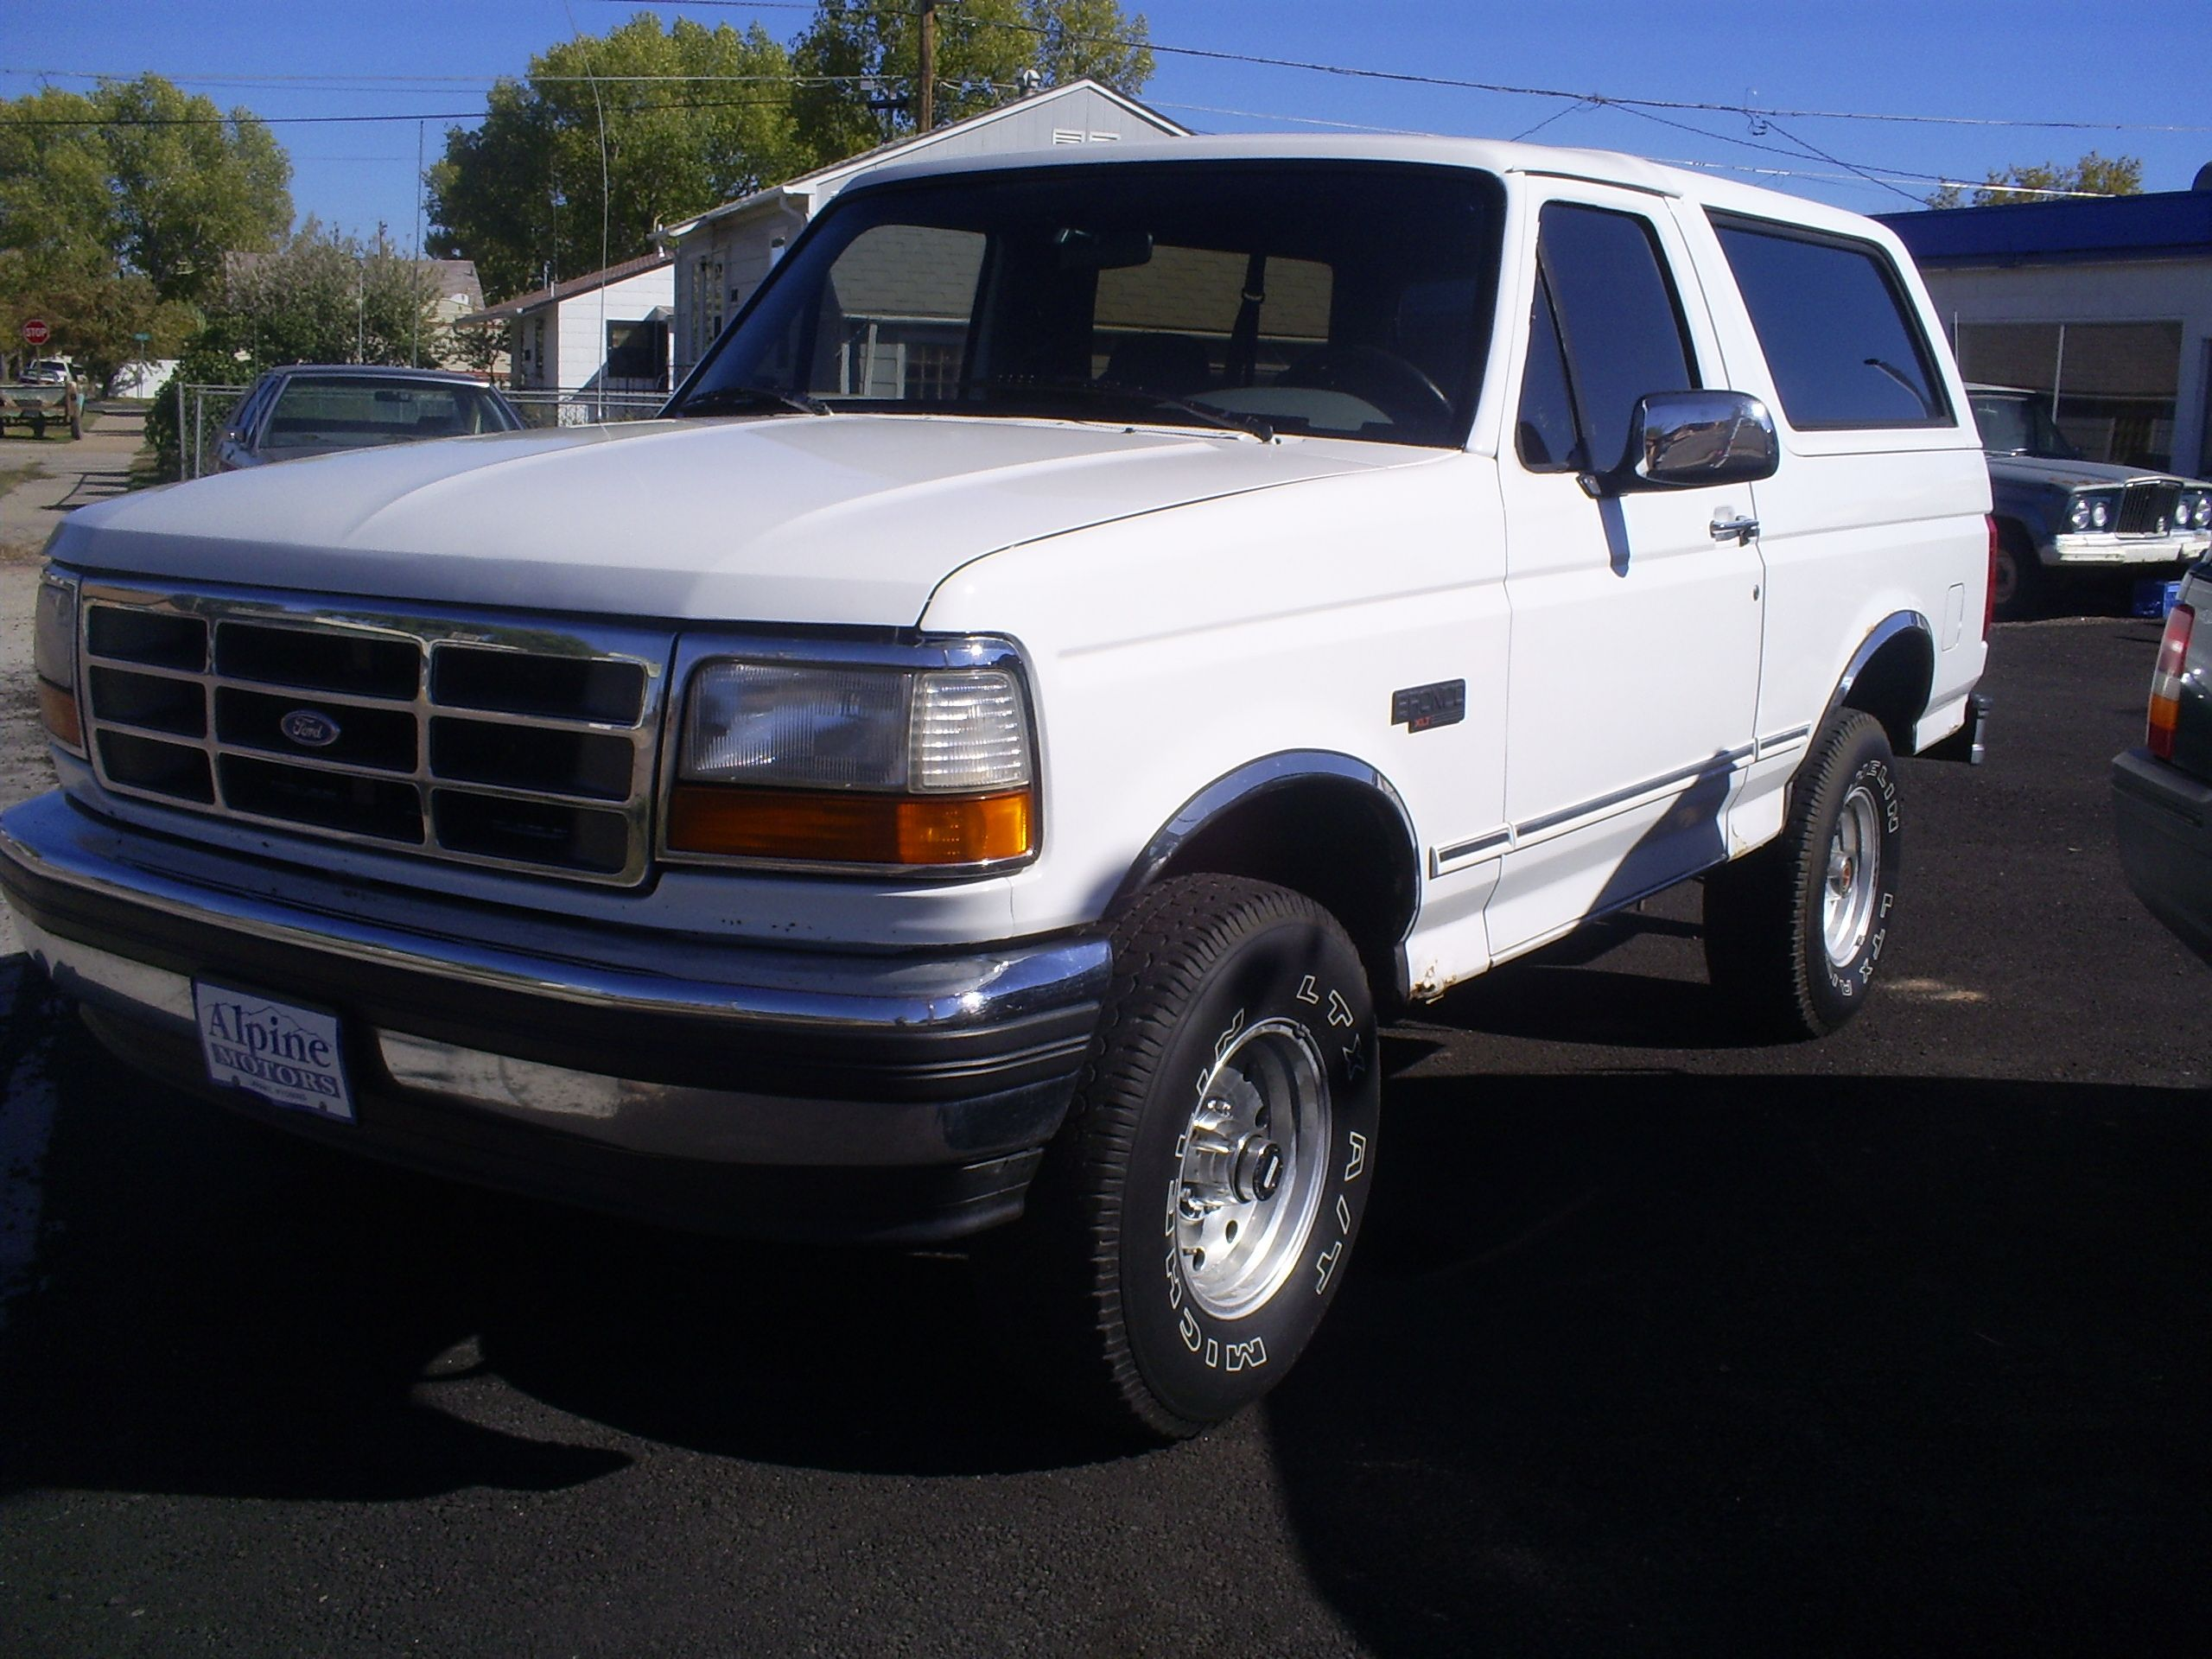 The Ford Bronco is a sport utility vehicle that was